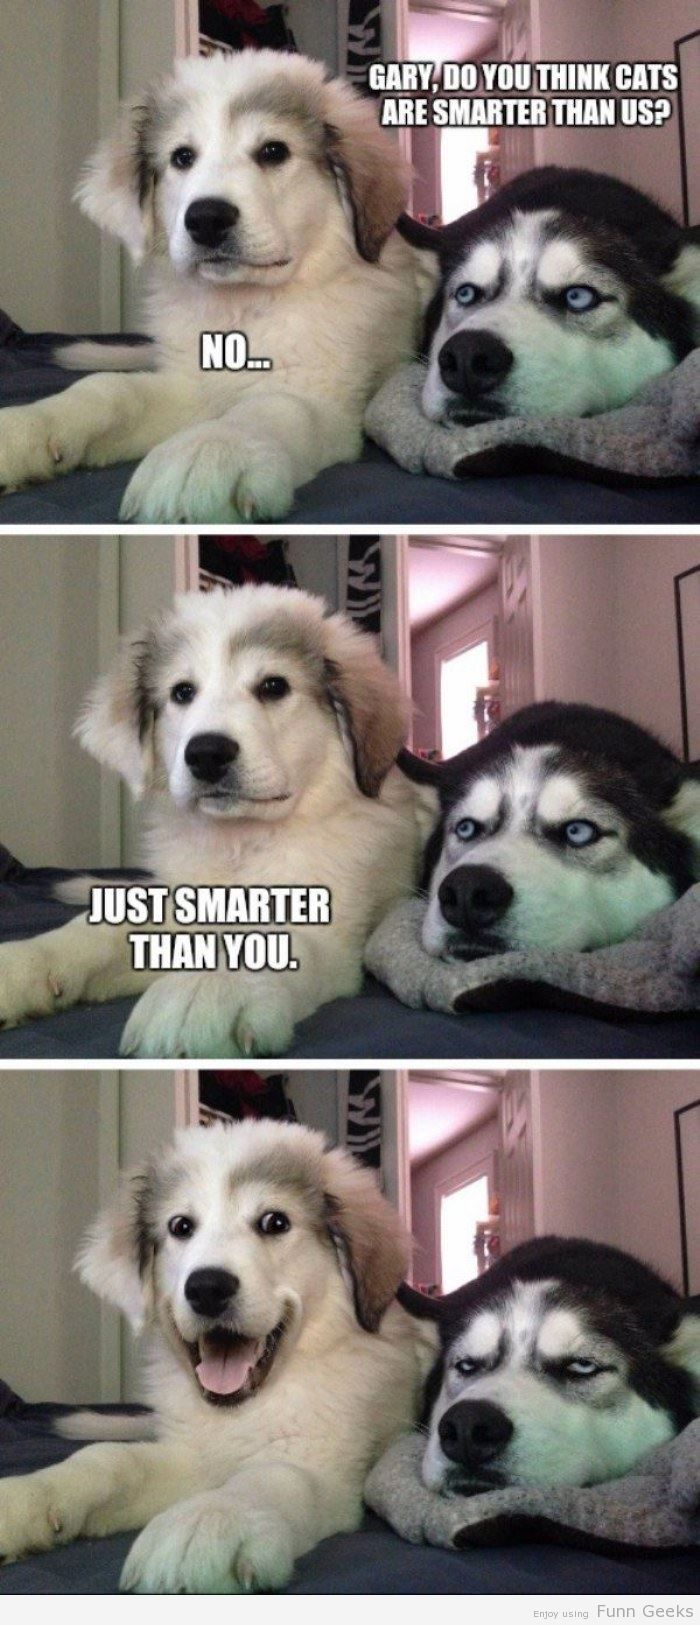 Are Cats Smarter funny imagesFunny Pictures Epic Fails Funny Planet iPhone Autocorrects Awkward Texts LOL Photos Hilarious Animal LOLs